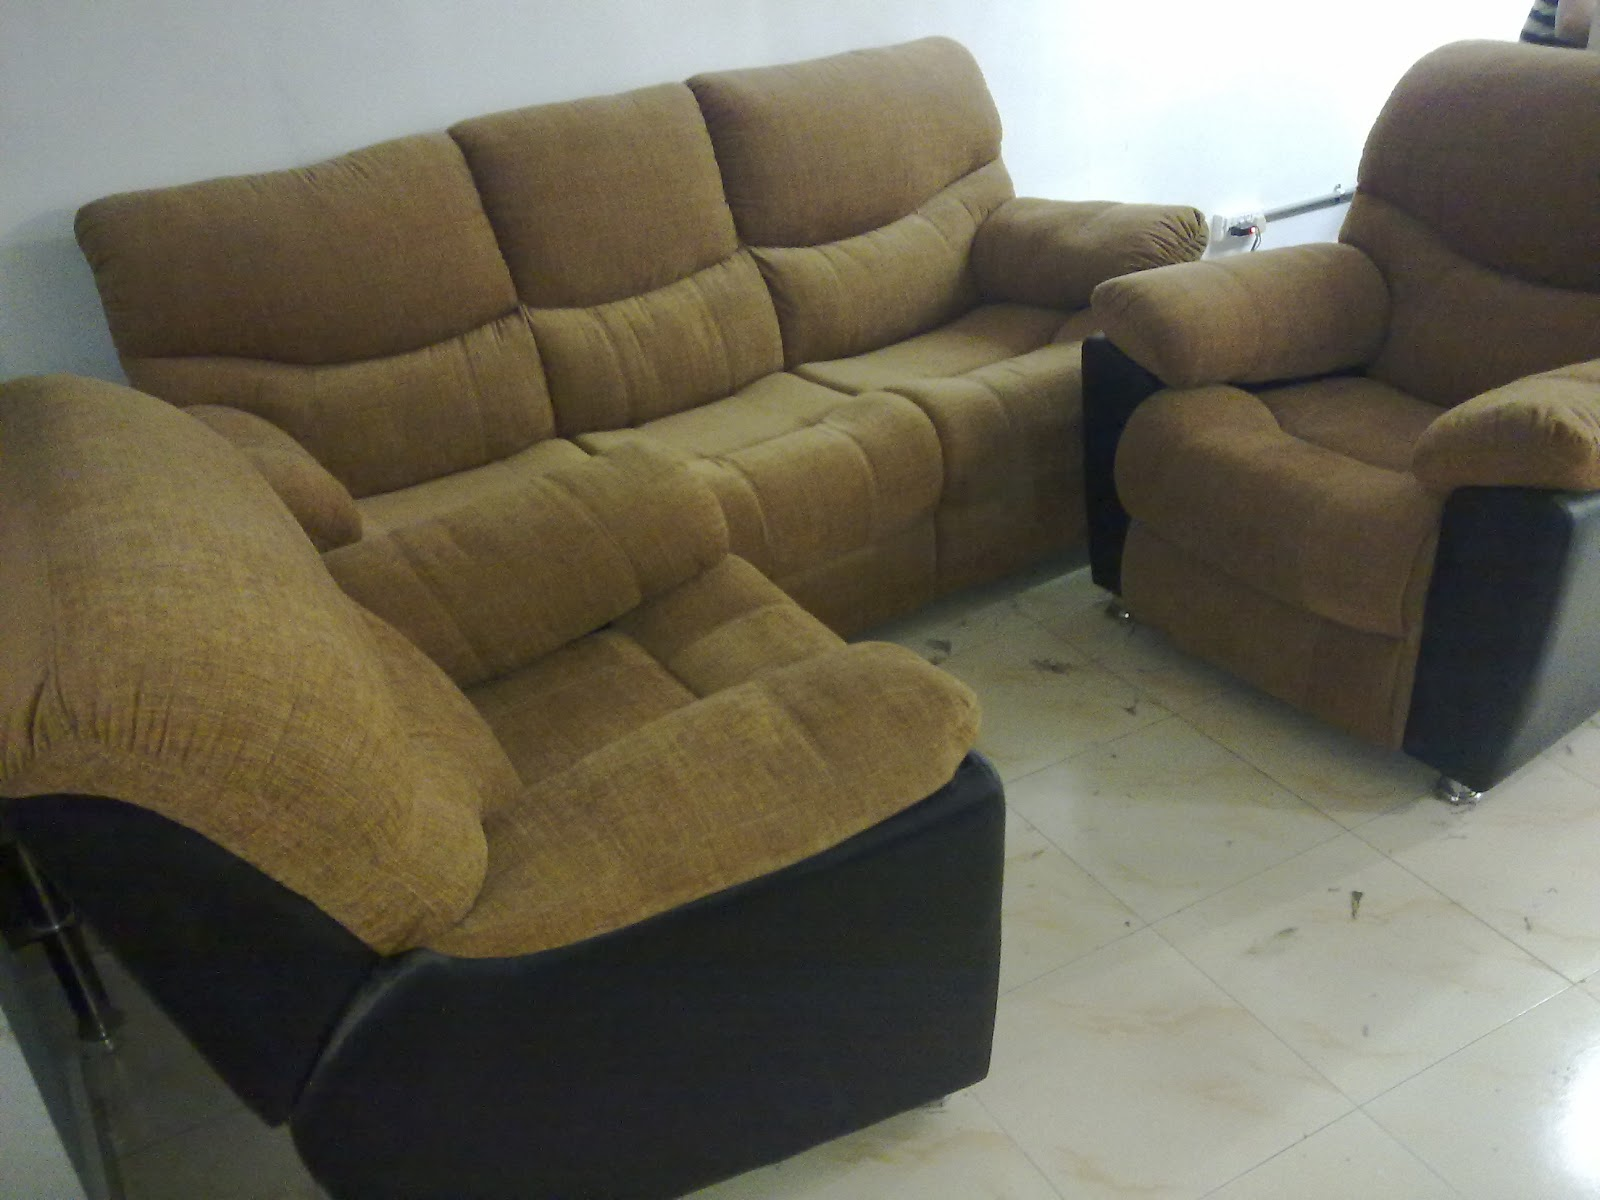 sofa sets in hyderabad online chesterfield modern union furniture and secunderabad new